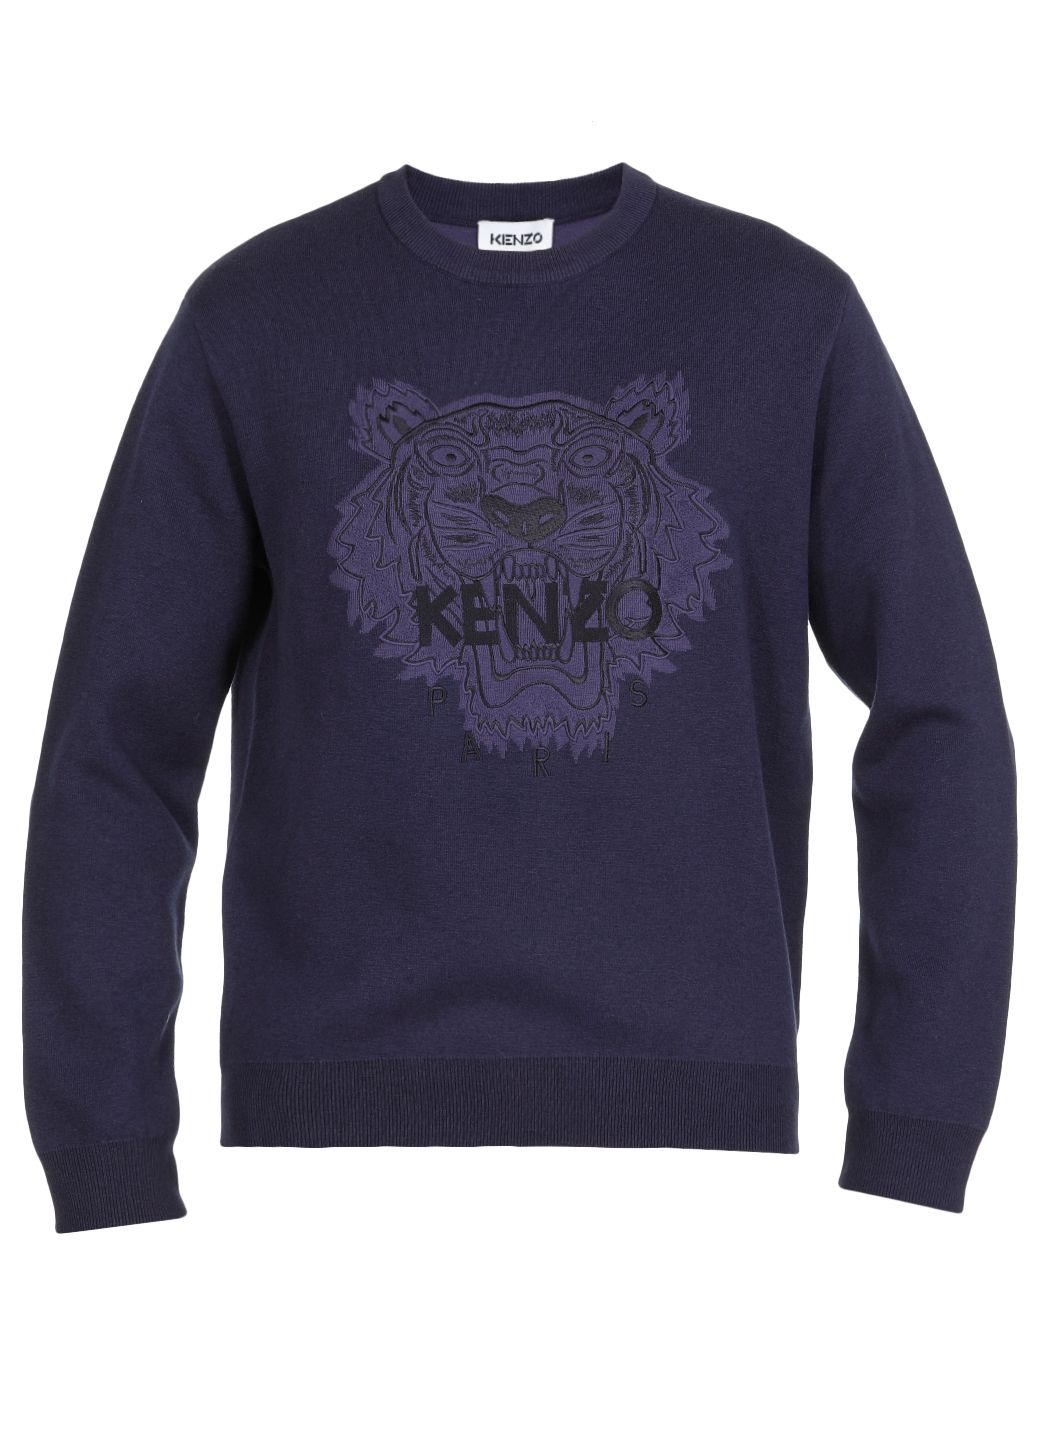 Wool and cotton blend logo sweater